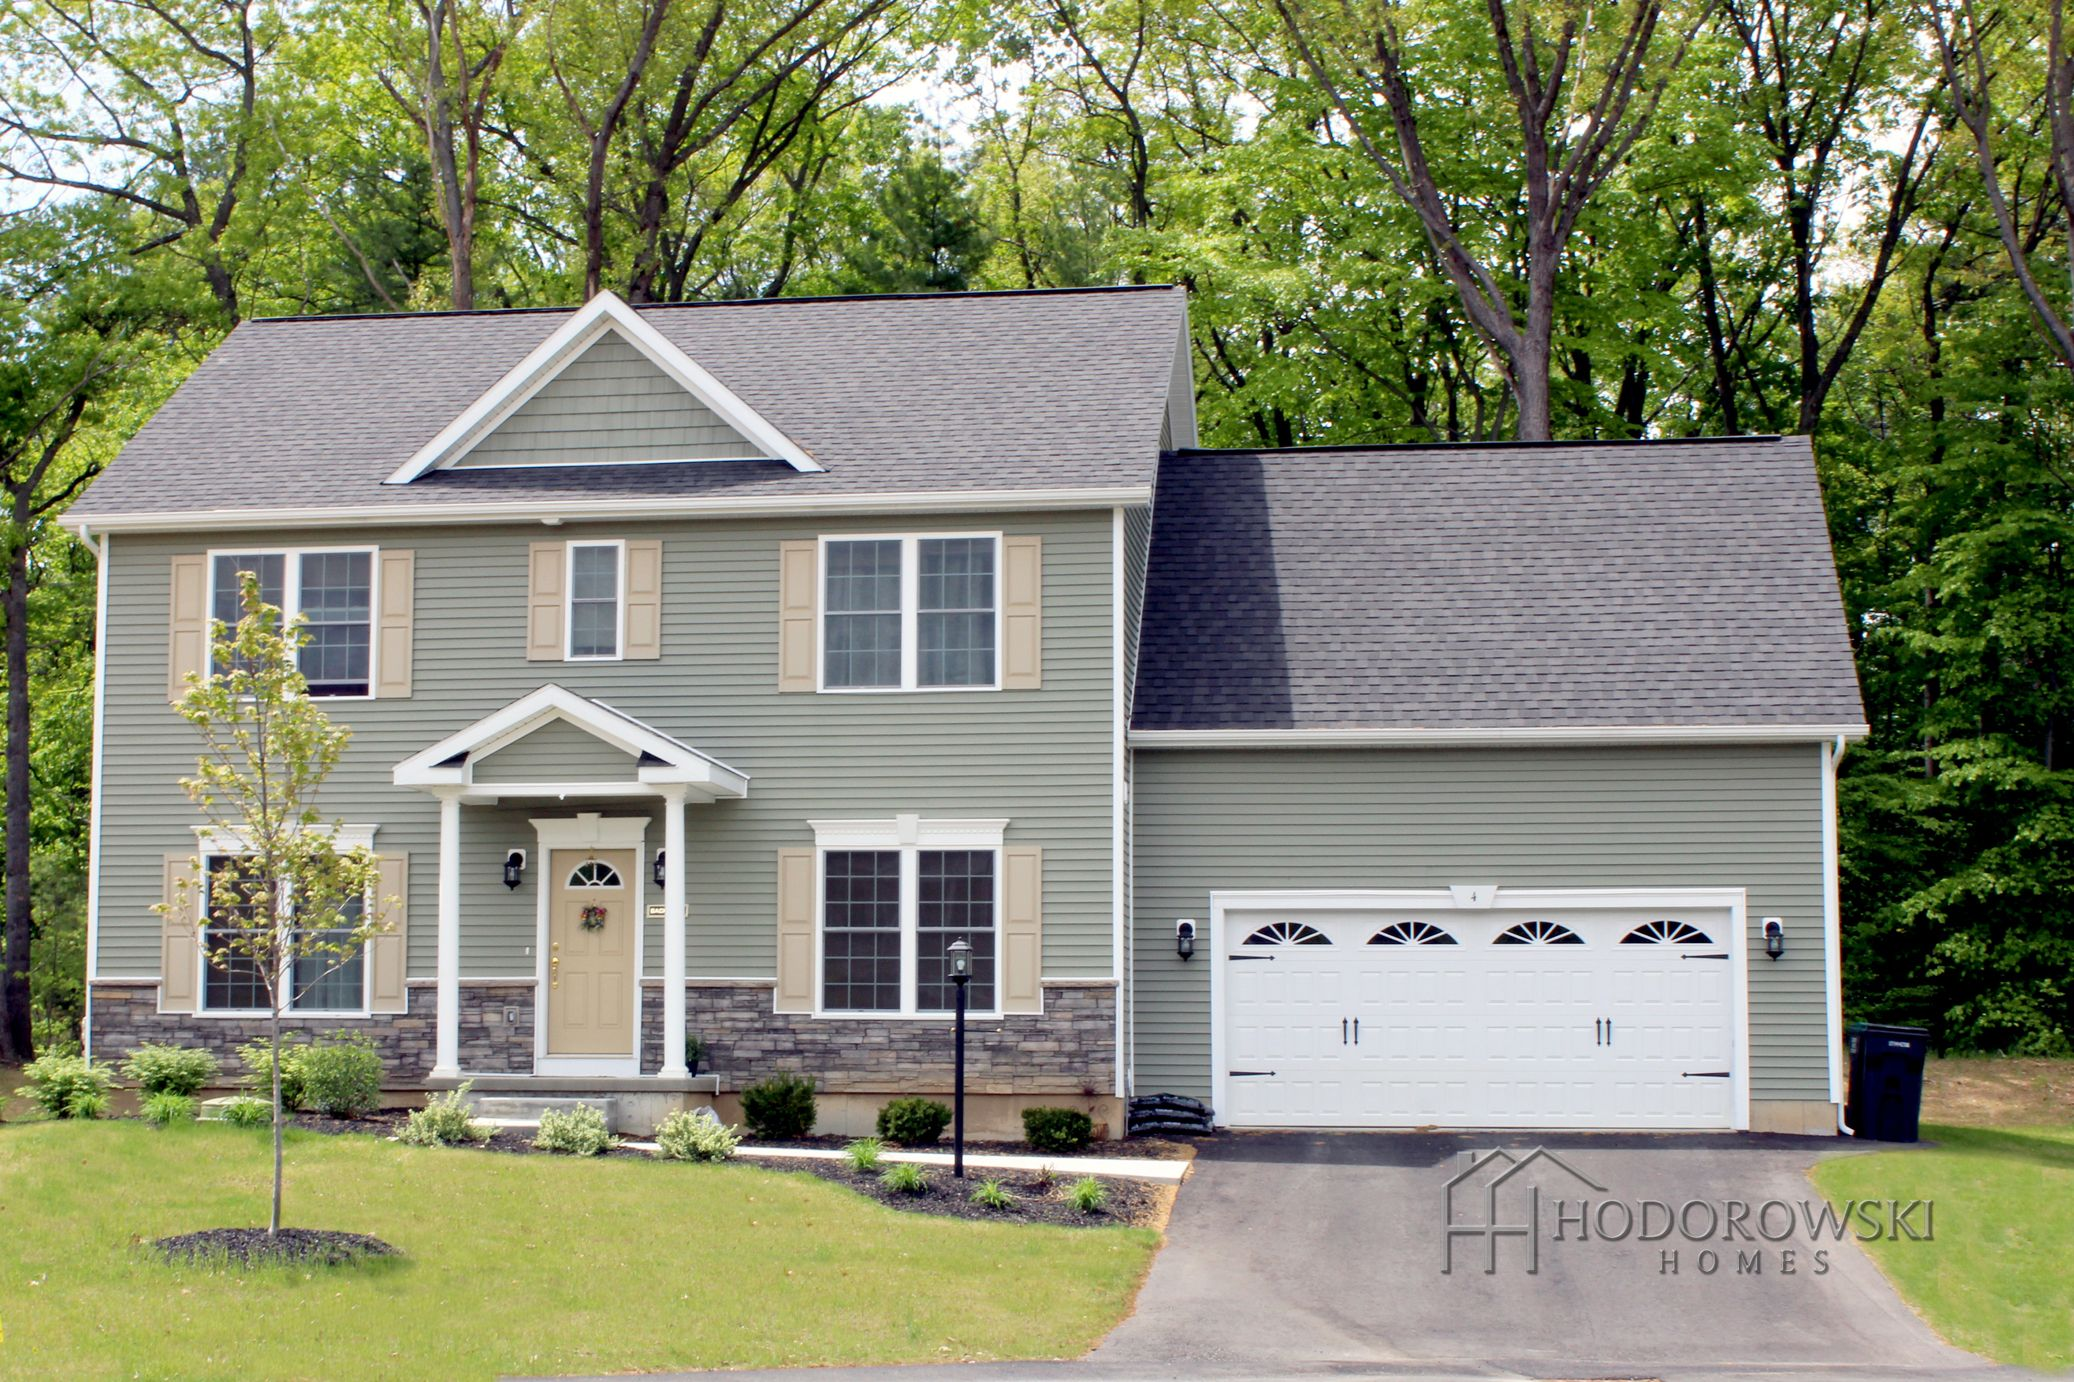 Check Out This Broadway Design With Meadow Vinyl Siding And